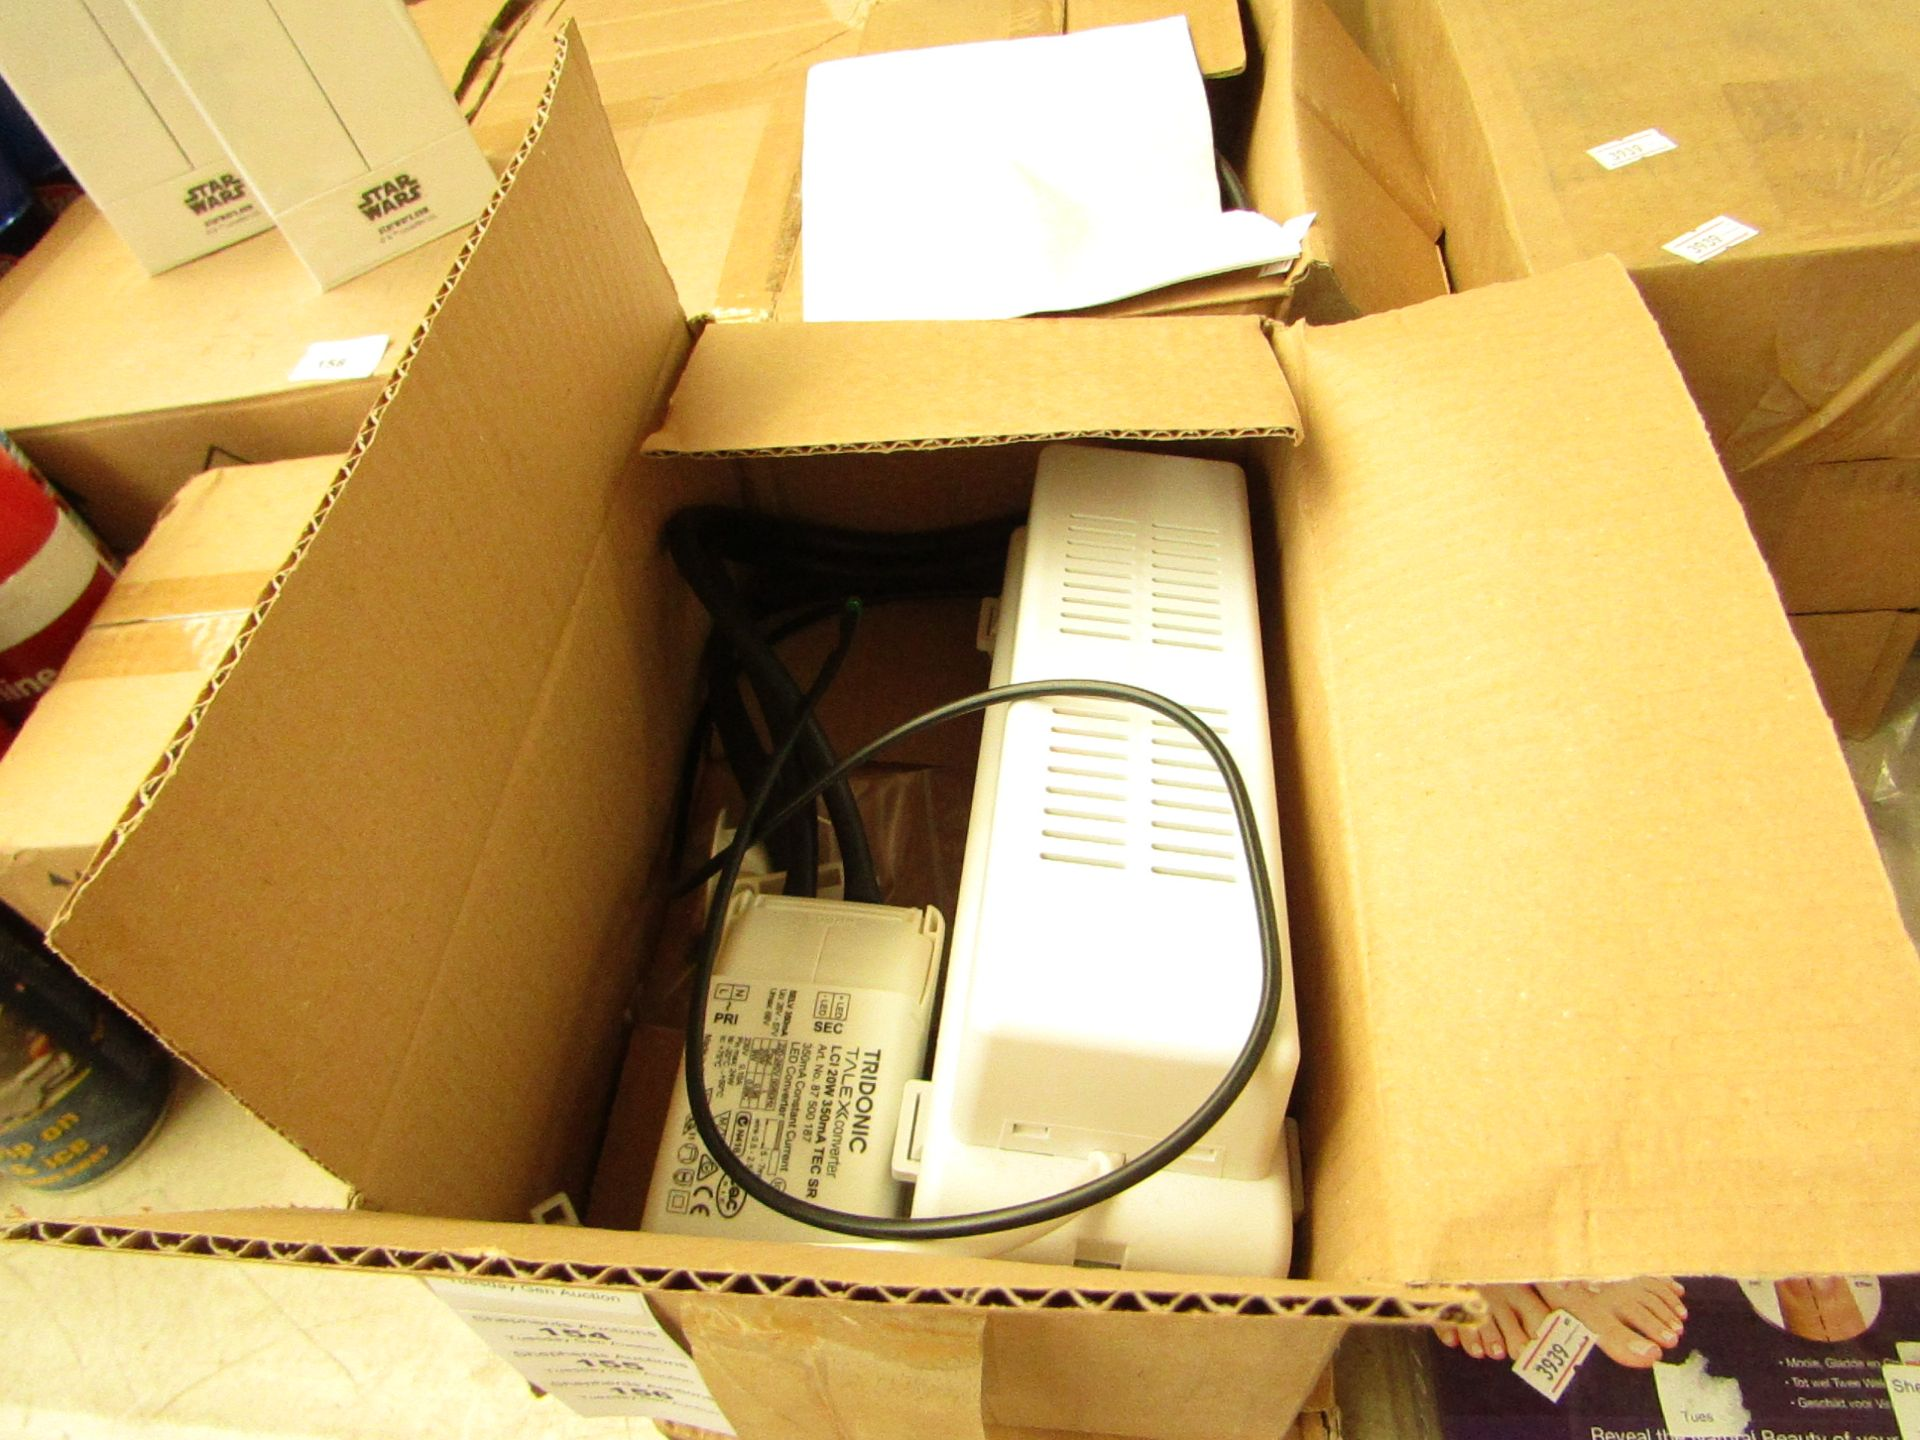 Los 154 - Emergency light tester kit, untested and boxed.